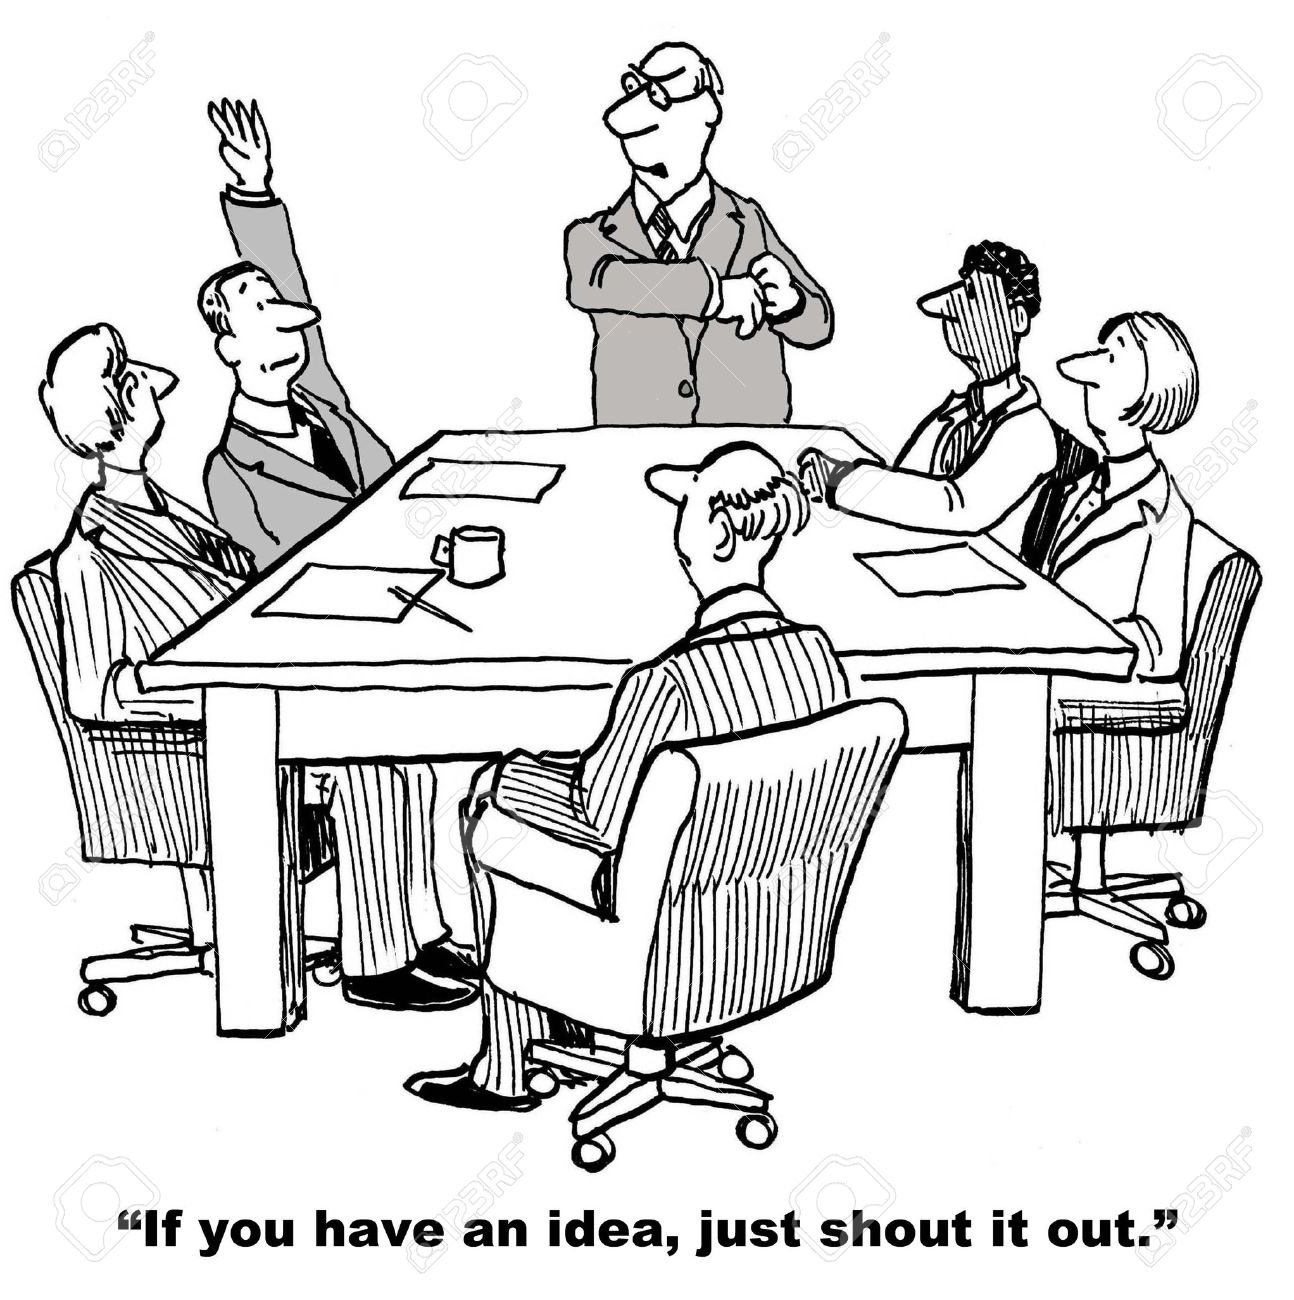 cartoon of businessman raising hand in meeting rather than just